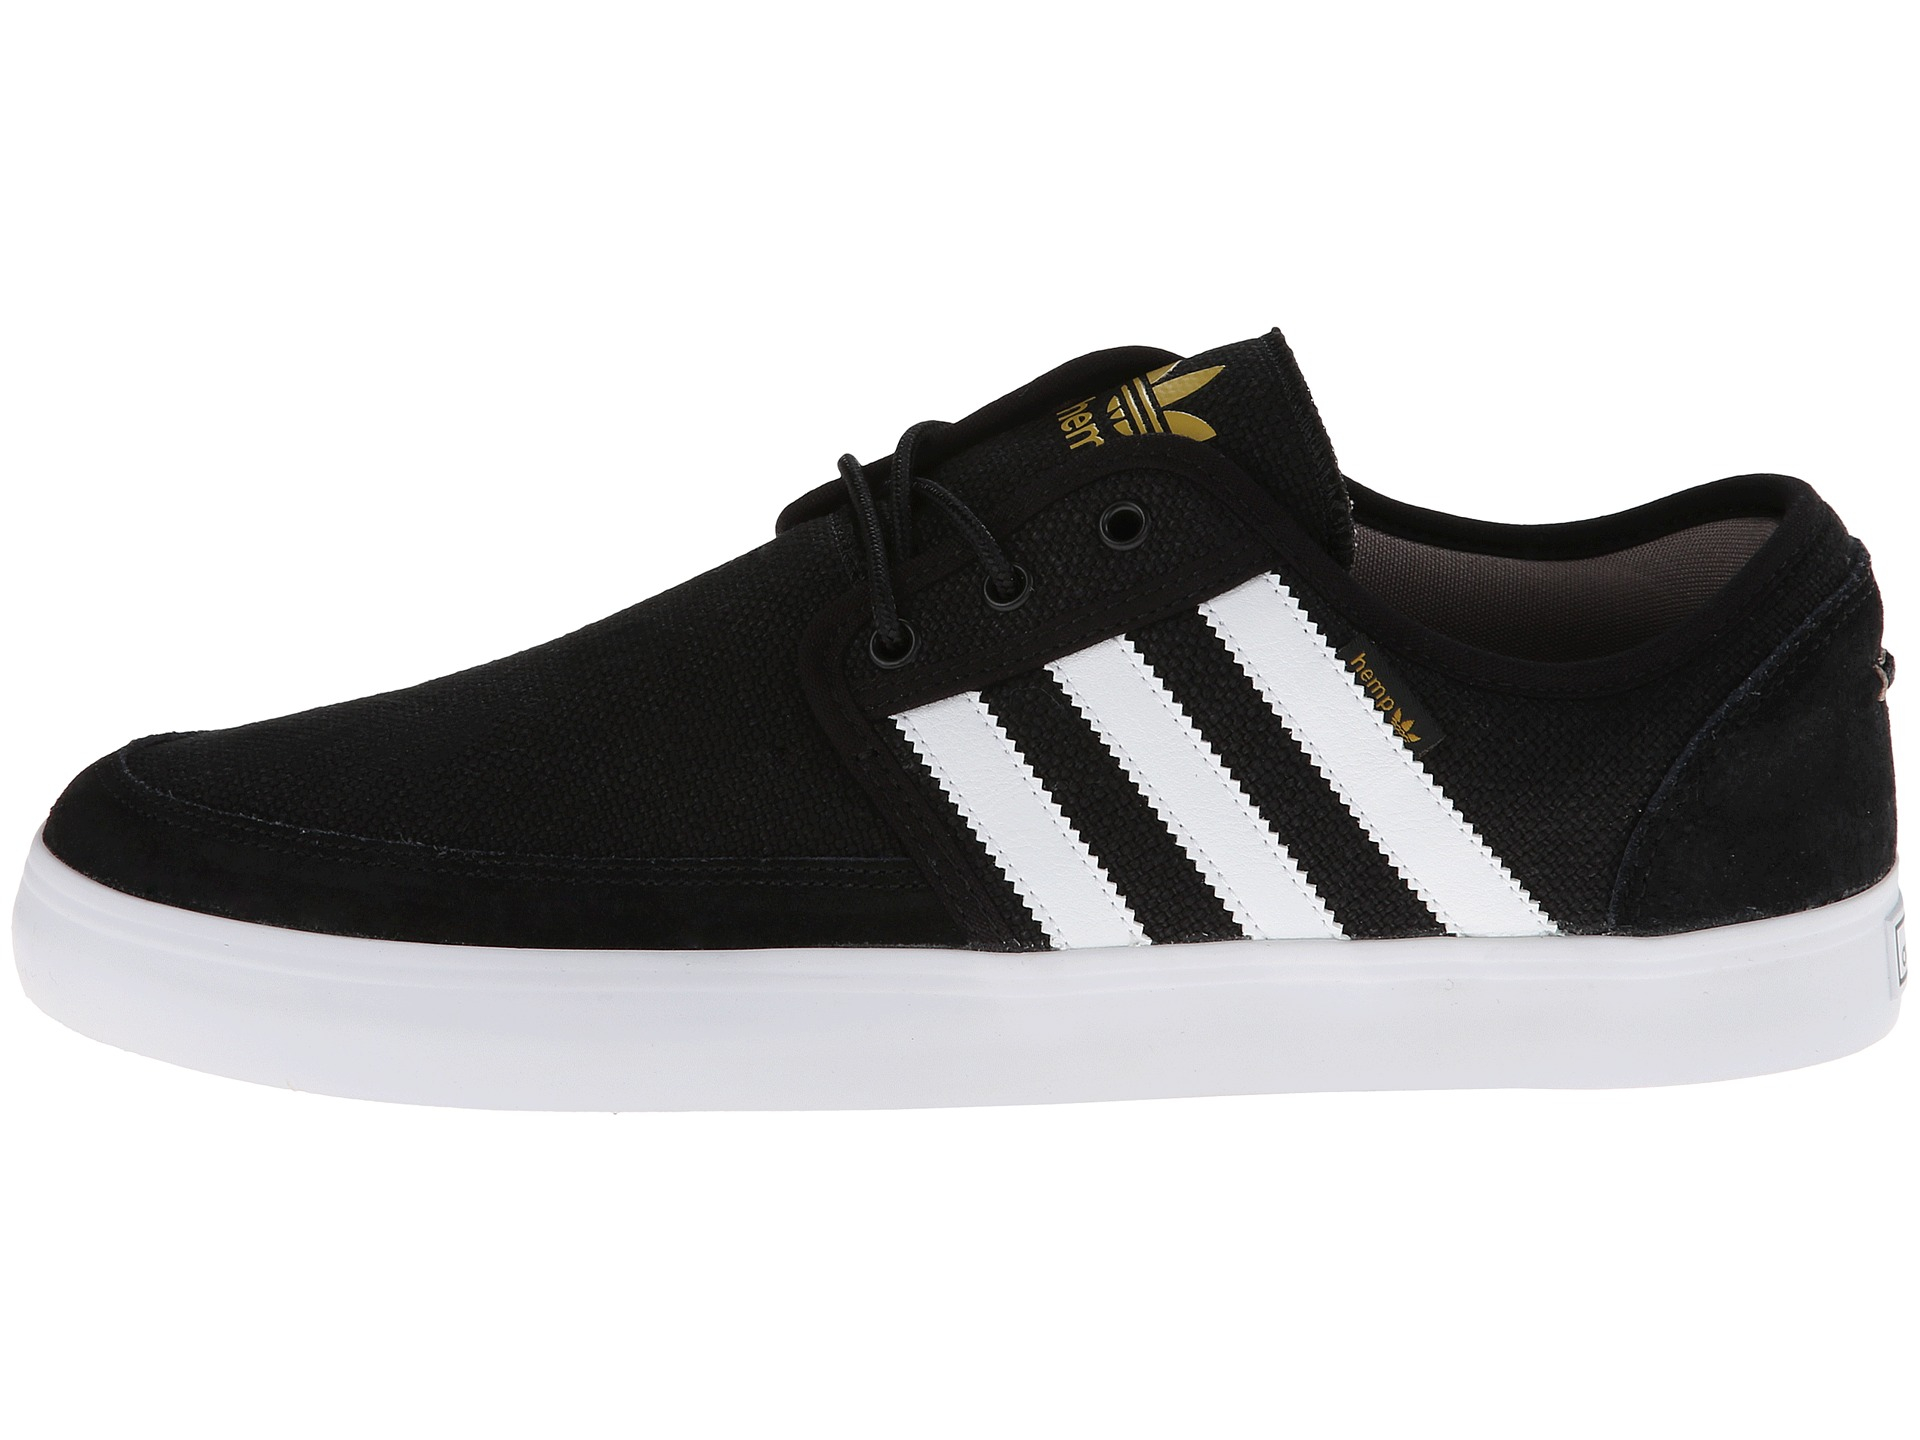 adidas Seeley Boat in Black for Men - Lyst